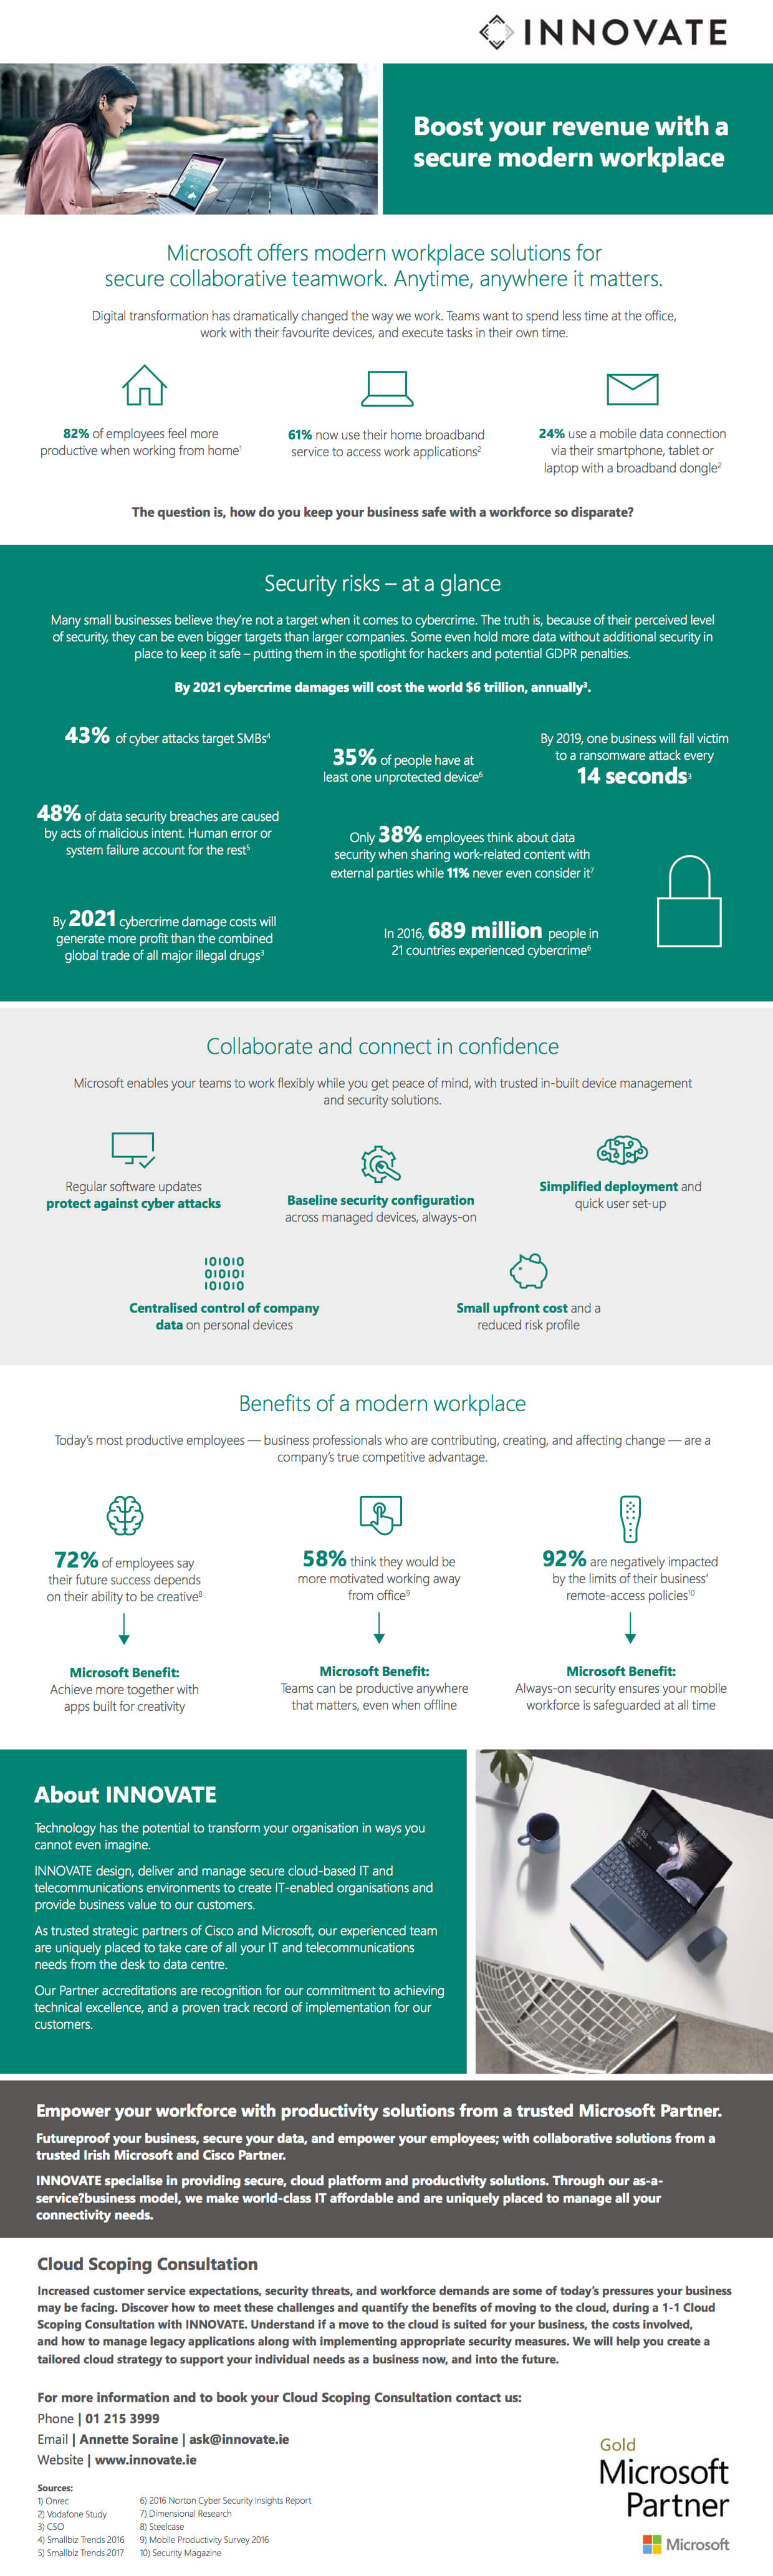 Boost Your Revenue With A Secure Modern Workplace - Infographic